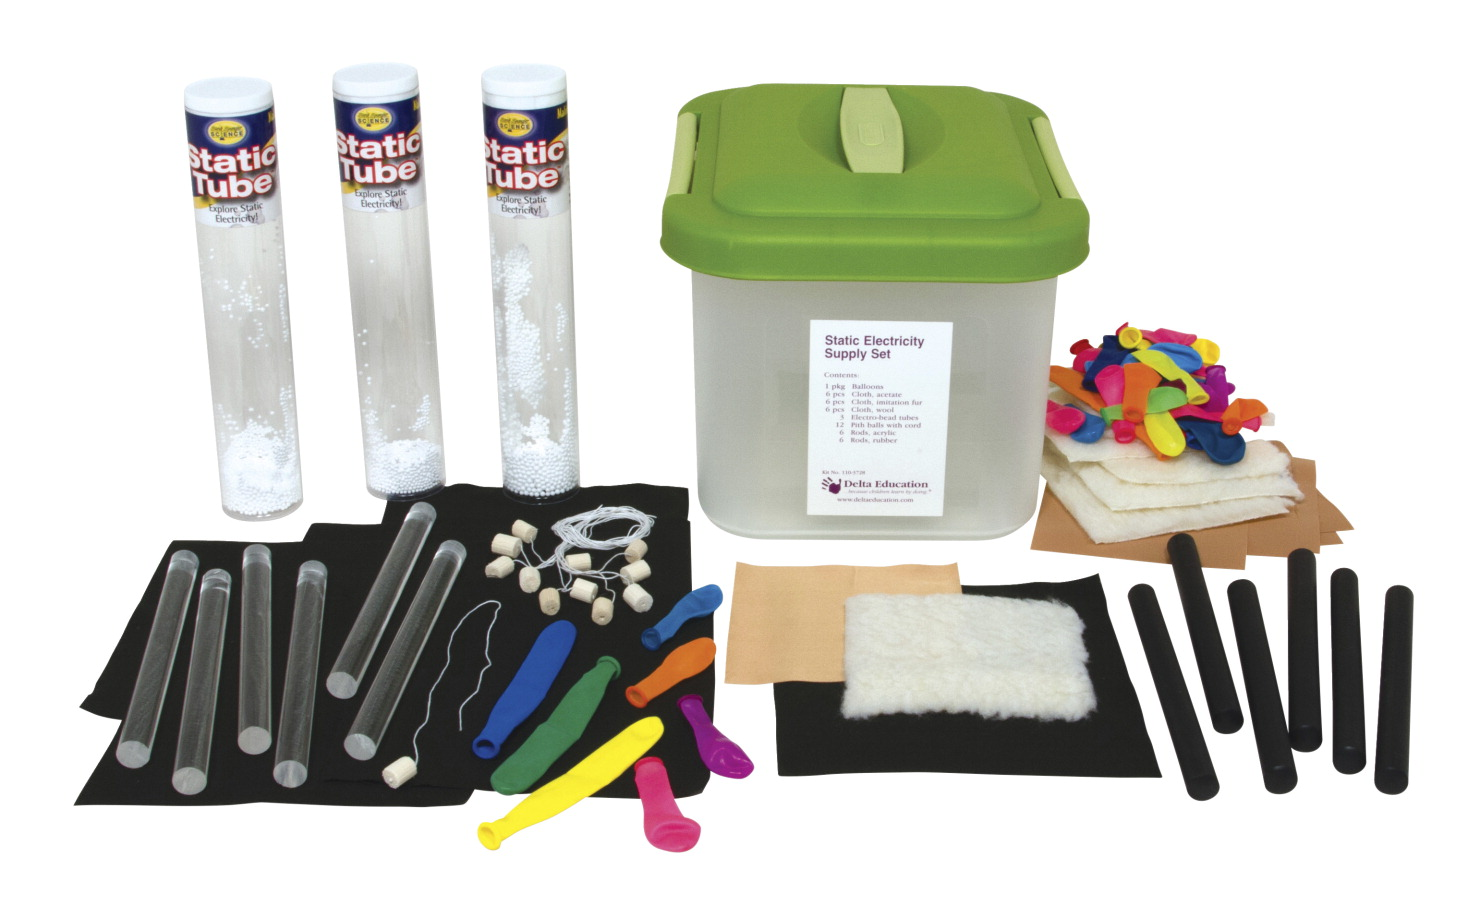 Delta Education Static Electricity Supply Kit, Grade 3 - 6